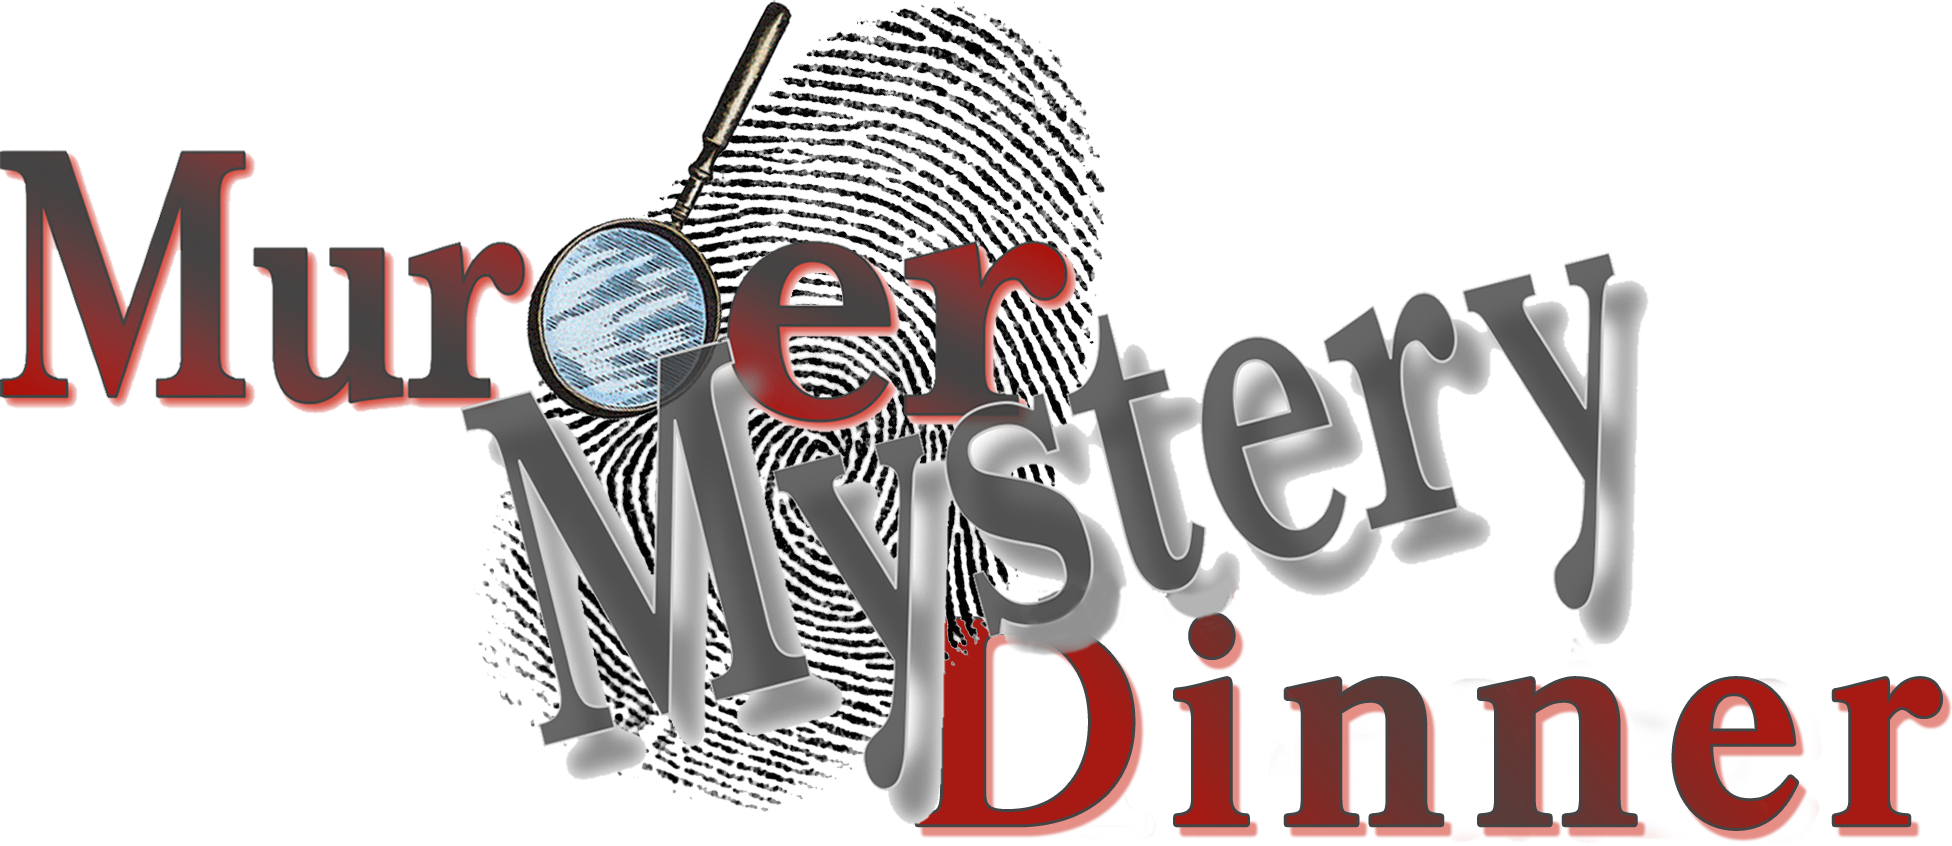 Murder dinner at hotel. Mystery clipart mystery movie